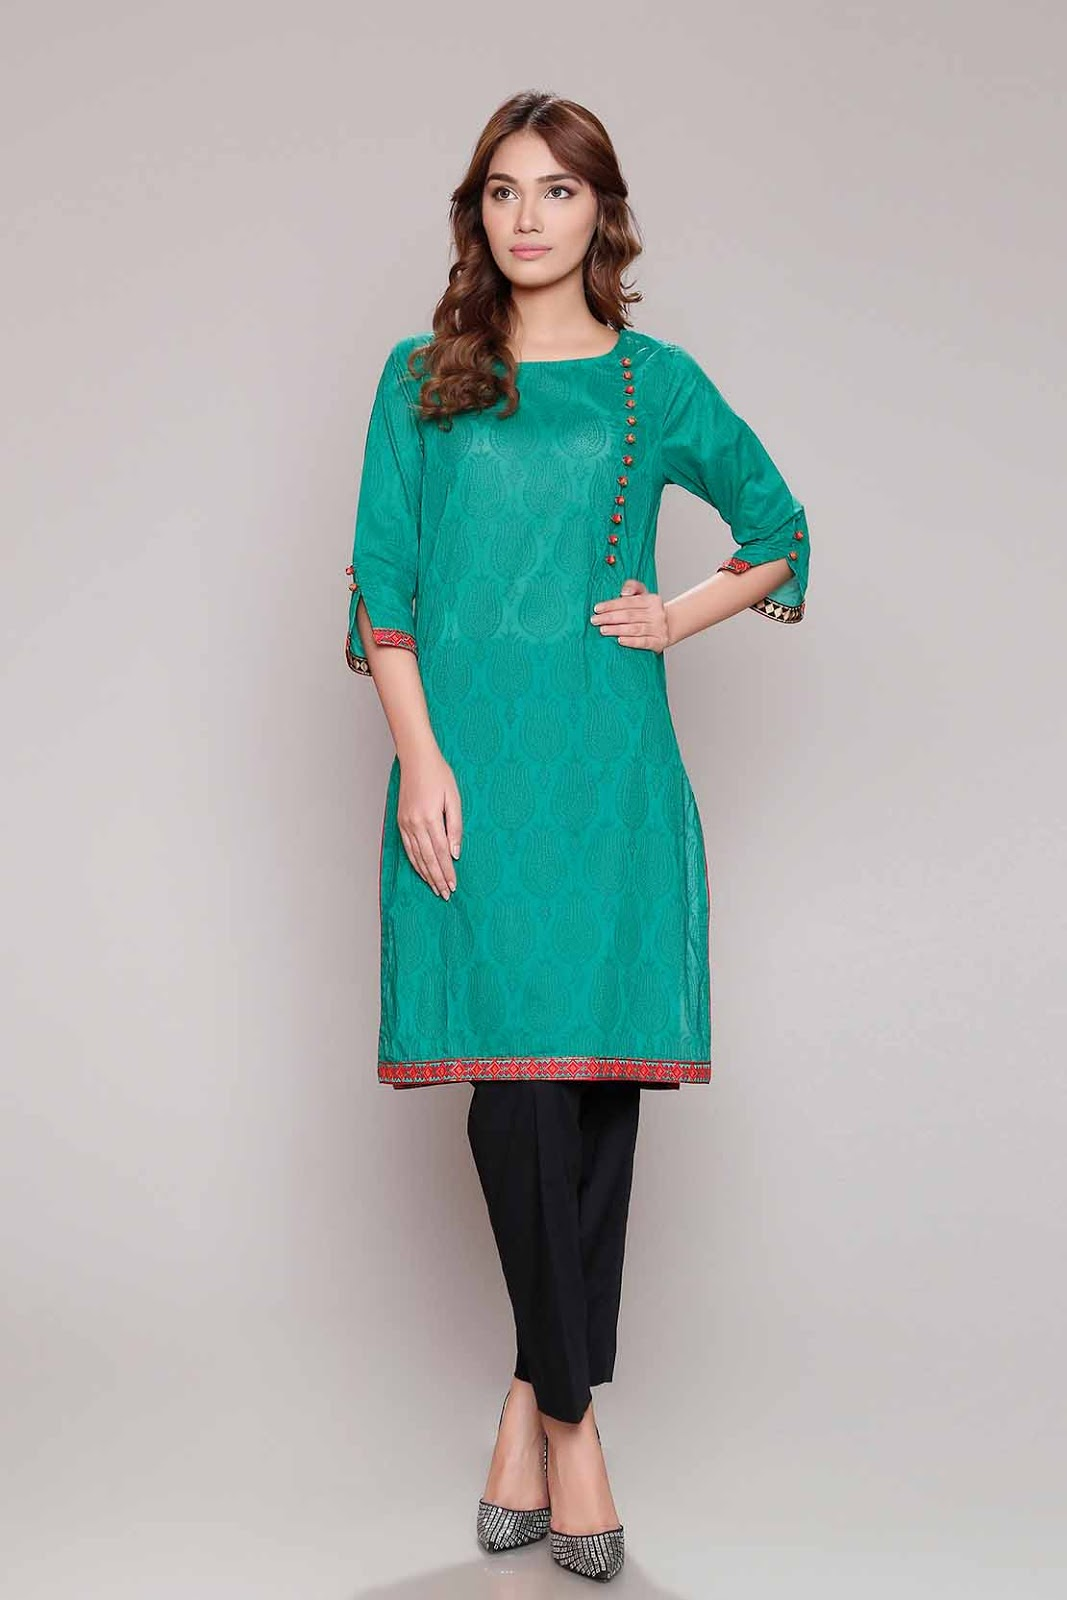 b4002d3435 The effect of sea green yellow and white make this dress eye catching and  beautiful as well as unique and captivating.